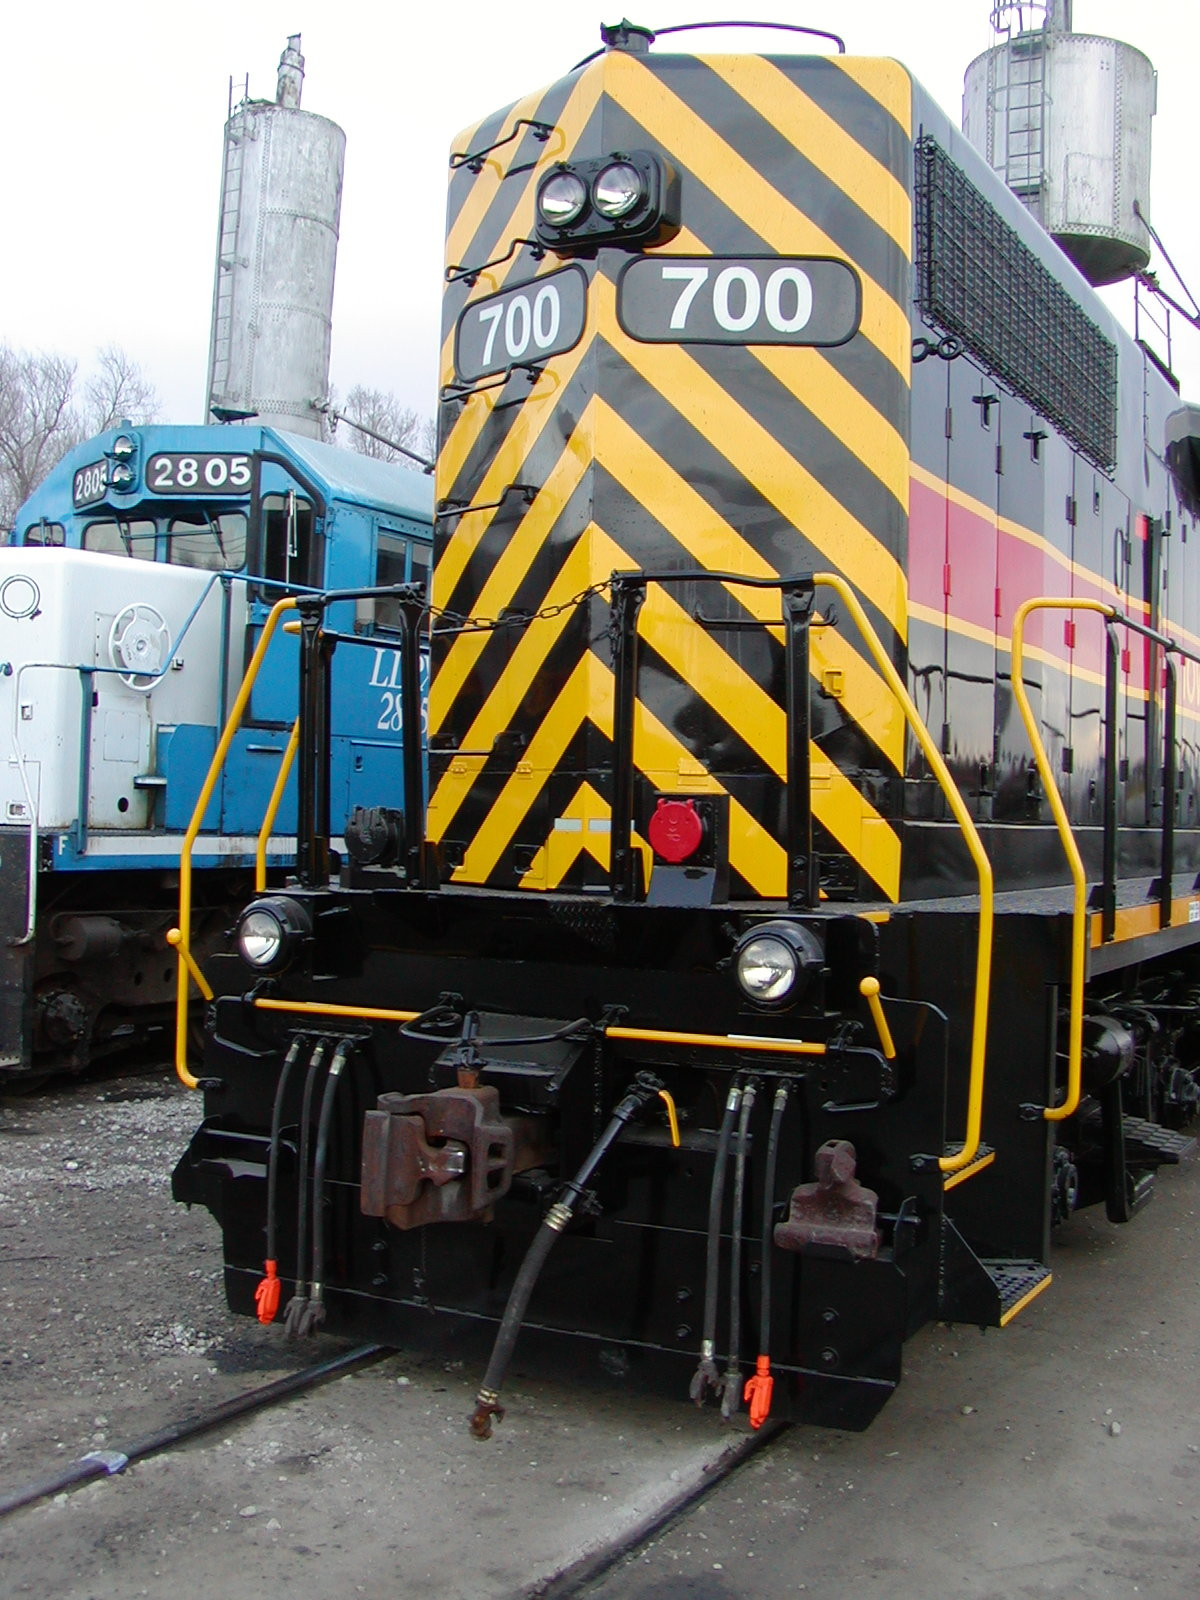 IAIS 700 at Council Bluffs, IA on 30-Dec-2004